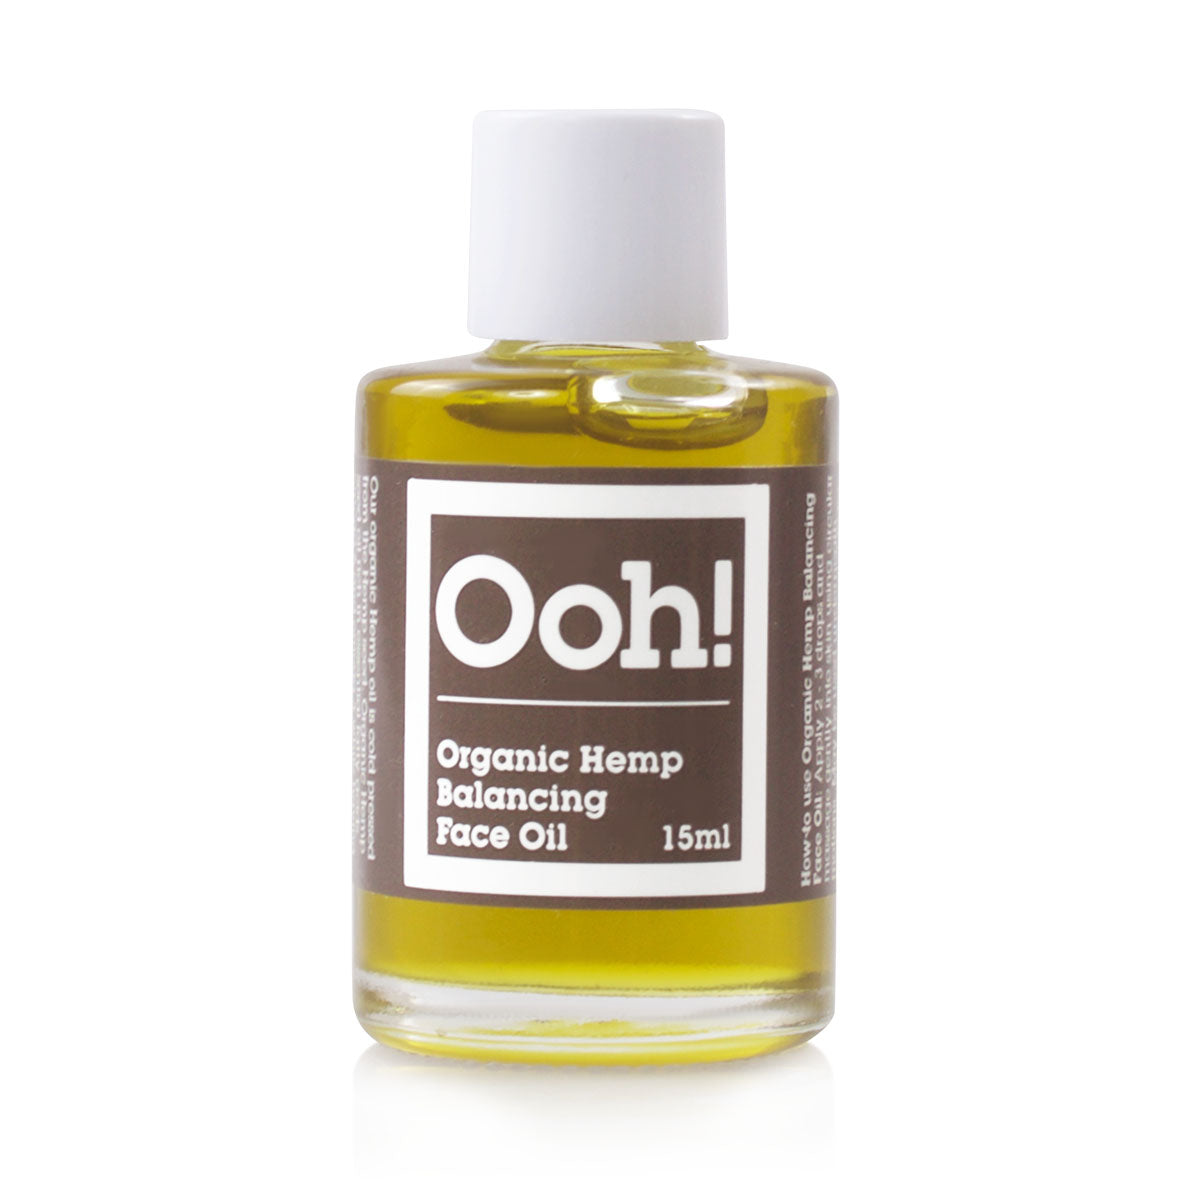 Organic Hemp Face Oil Travel Size 15ml